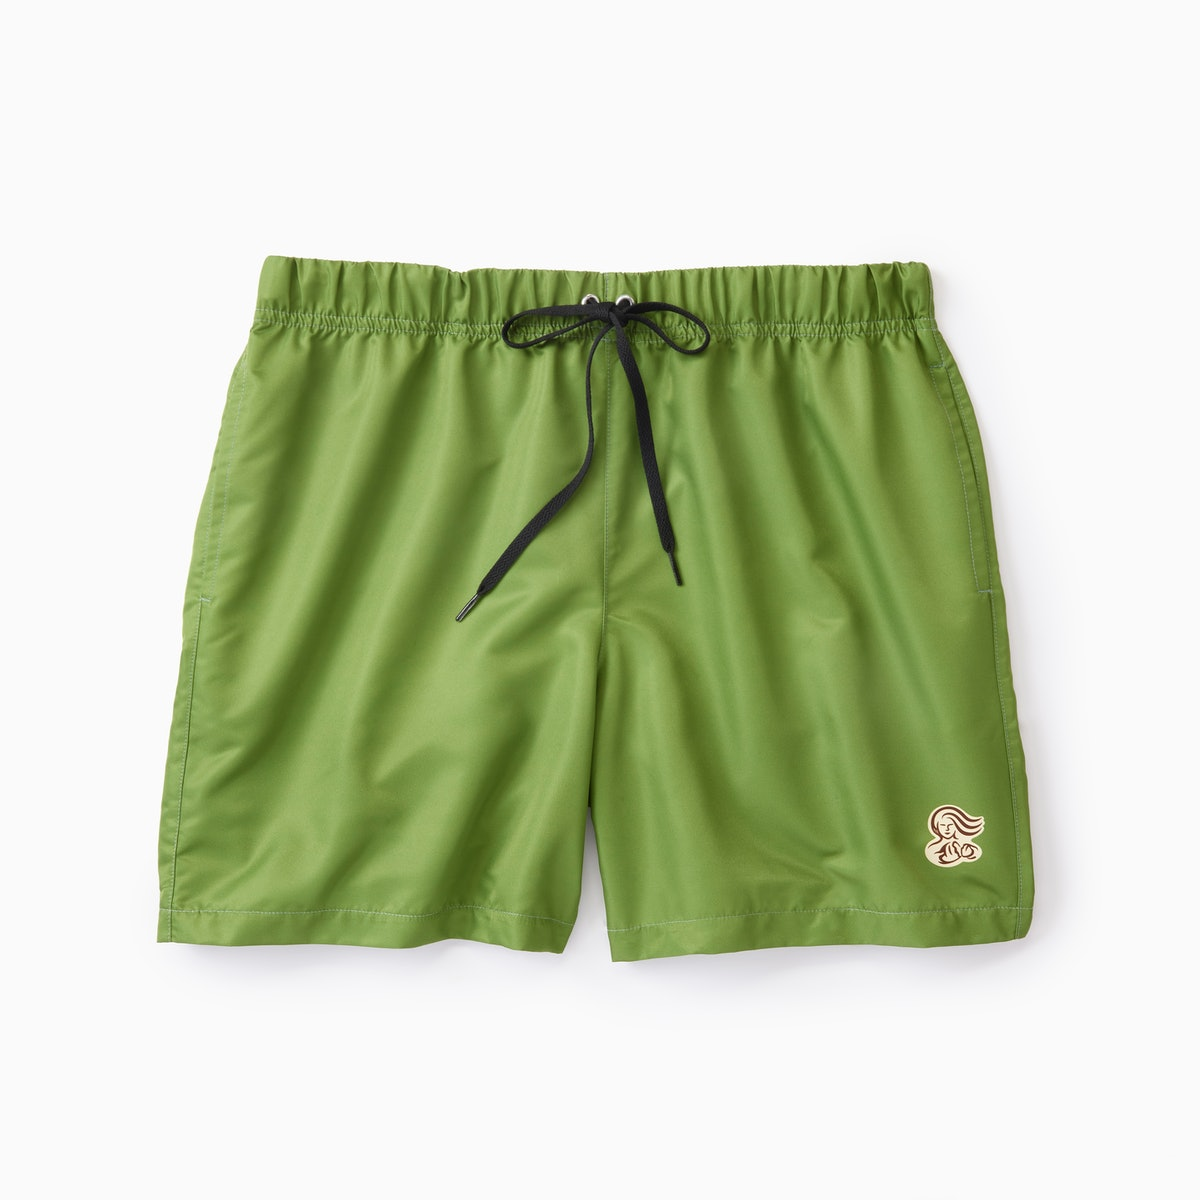 Panera's Swim Soup Summer 2021 collection is full of broccoli cheese inspiration.